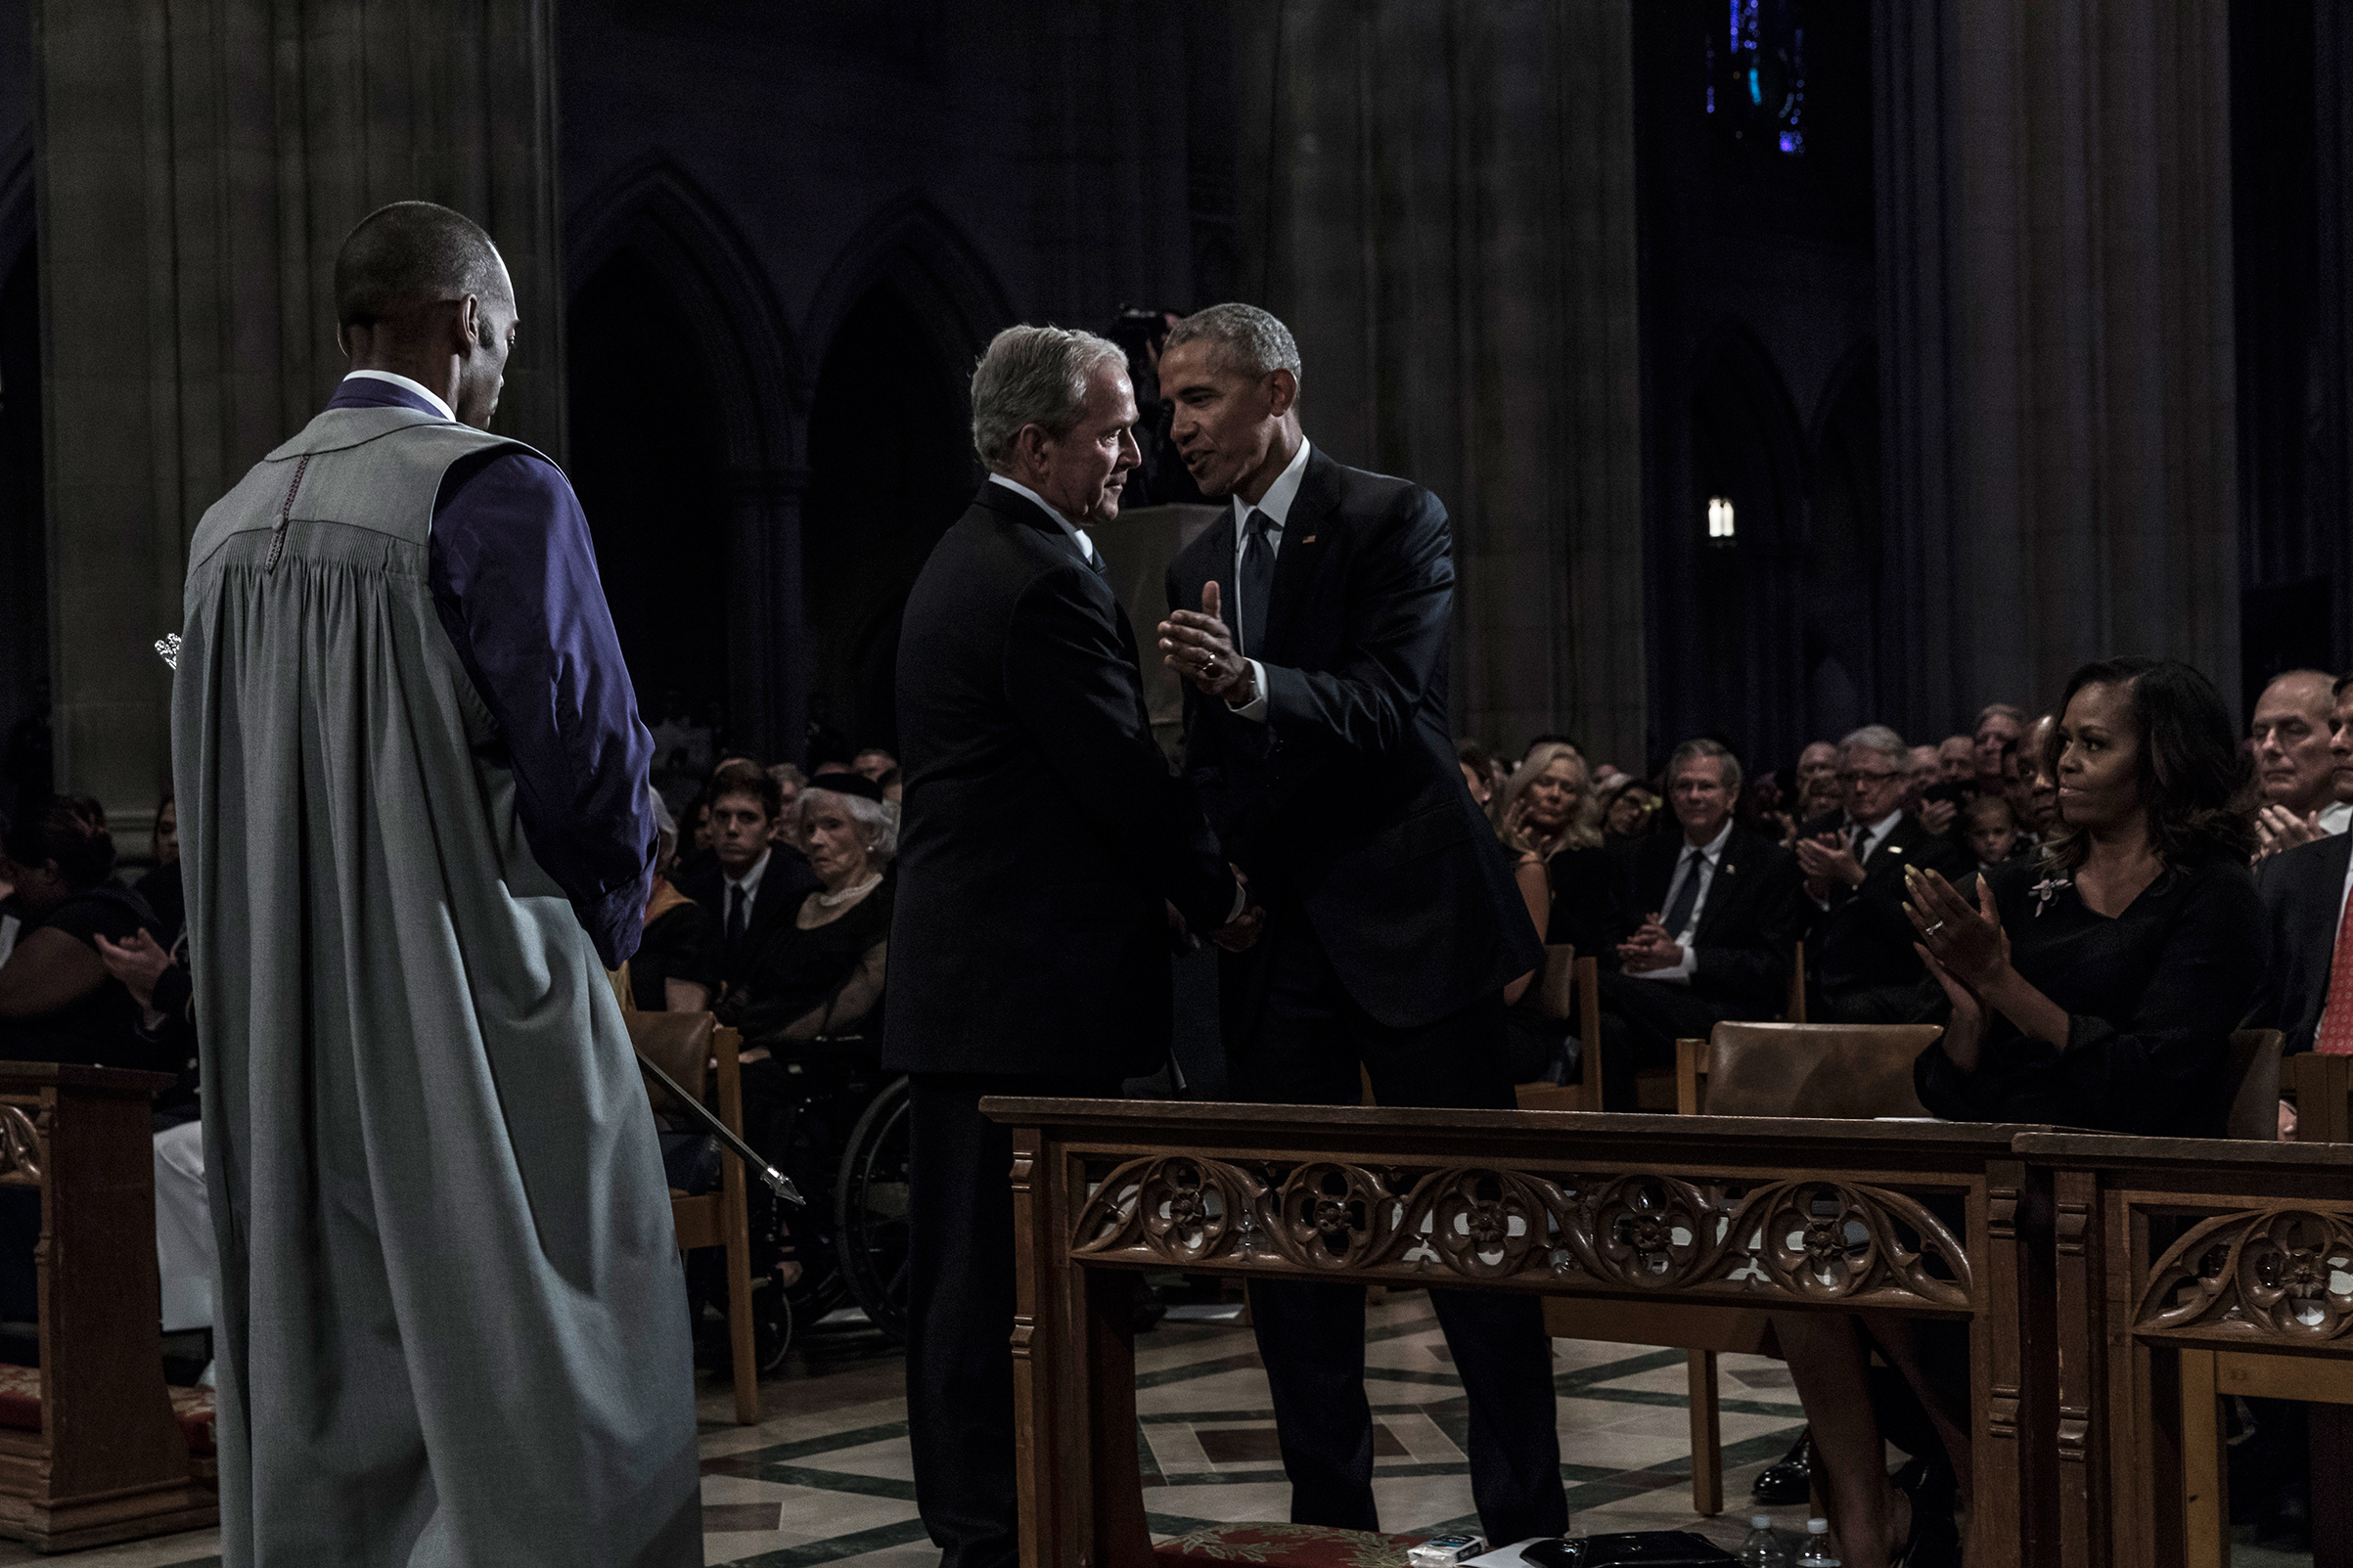 Former US Presidents Barack Obama, and George W. Bush during a memorial service for Senator John McCain at the Washington National Cathedral on September 1, 2018.